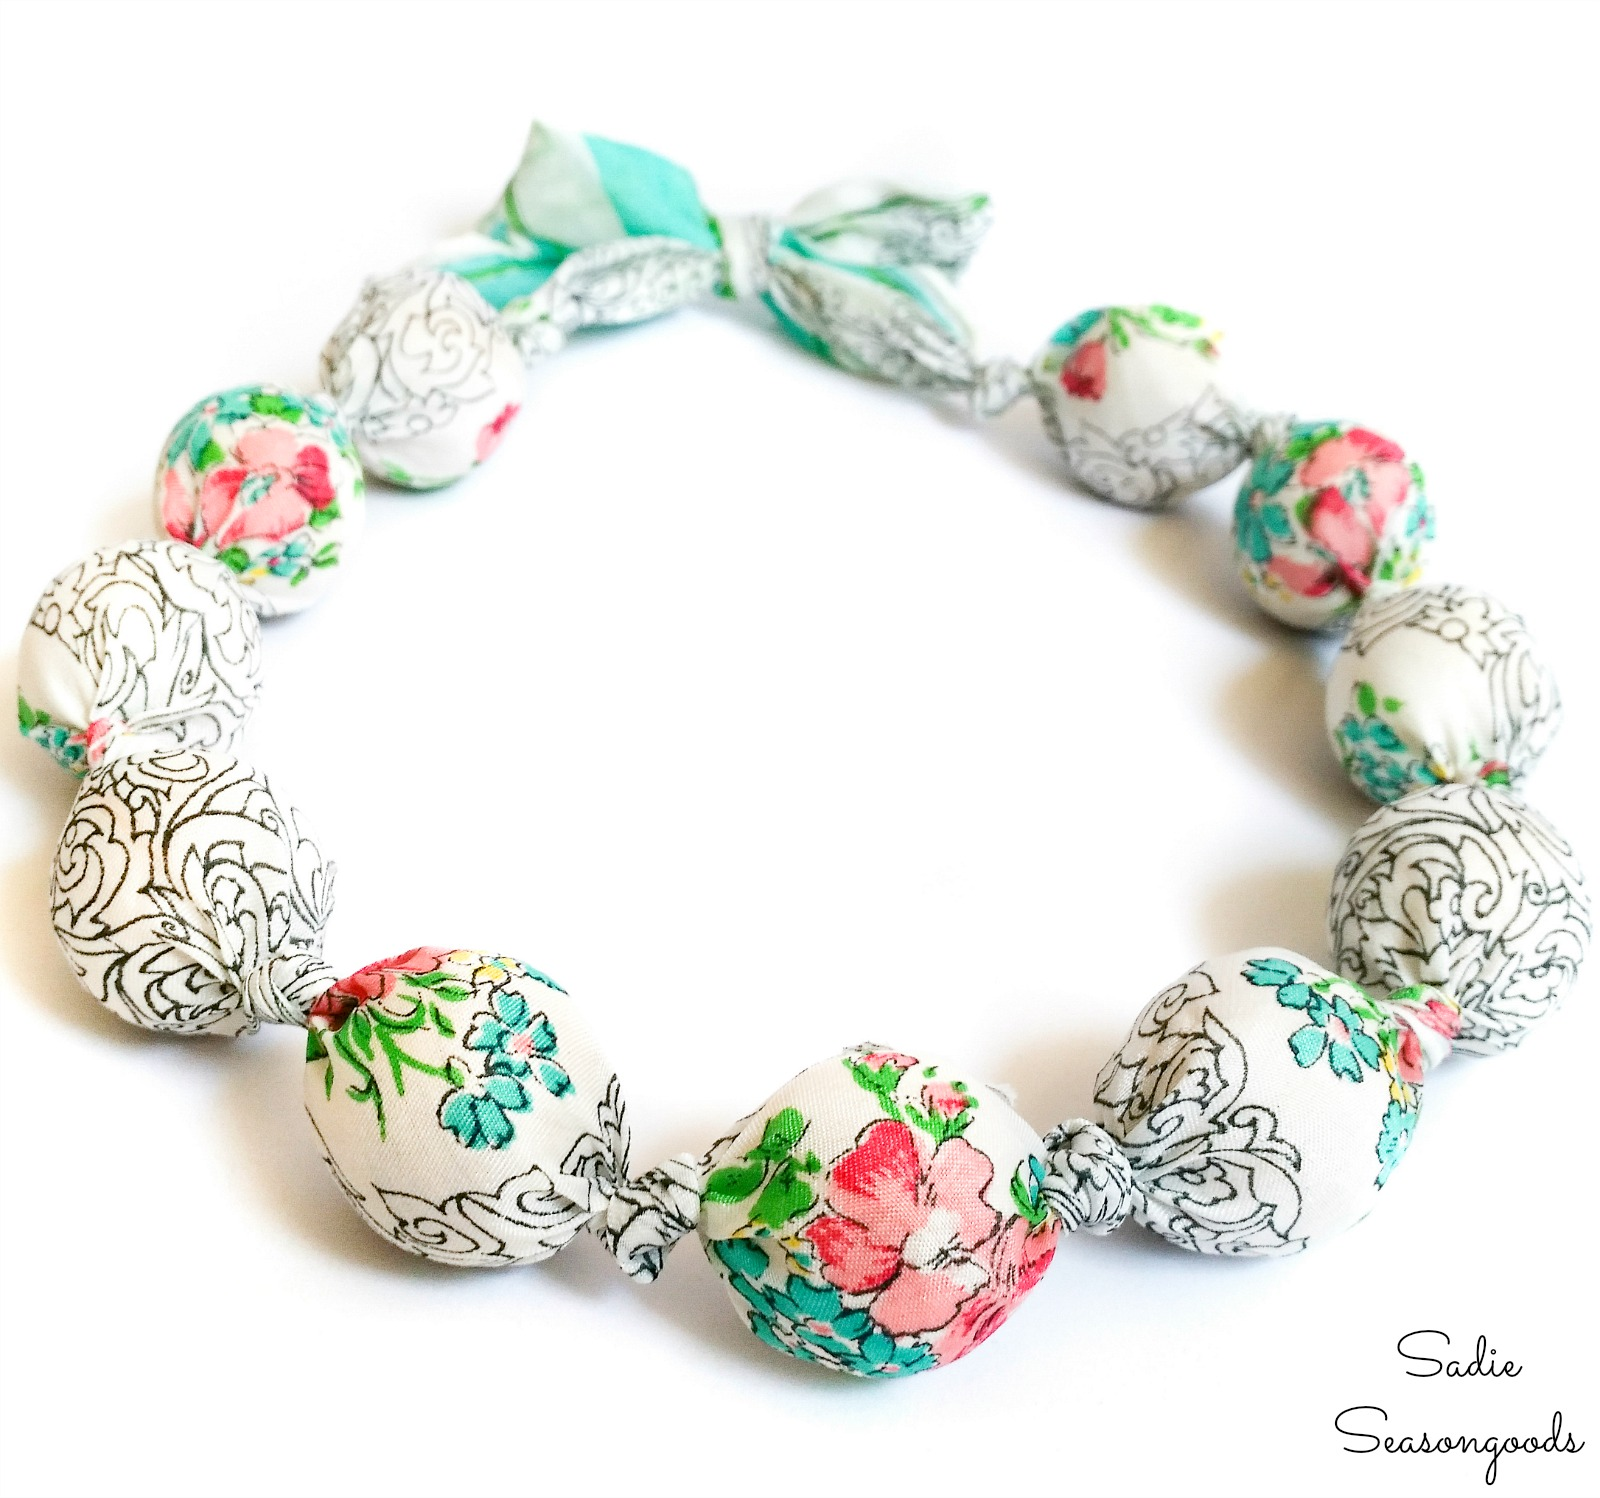 Make Your Own Necklace with Scarf Material